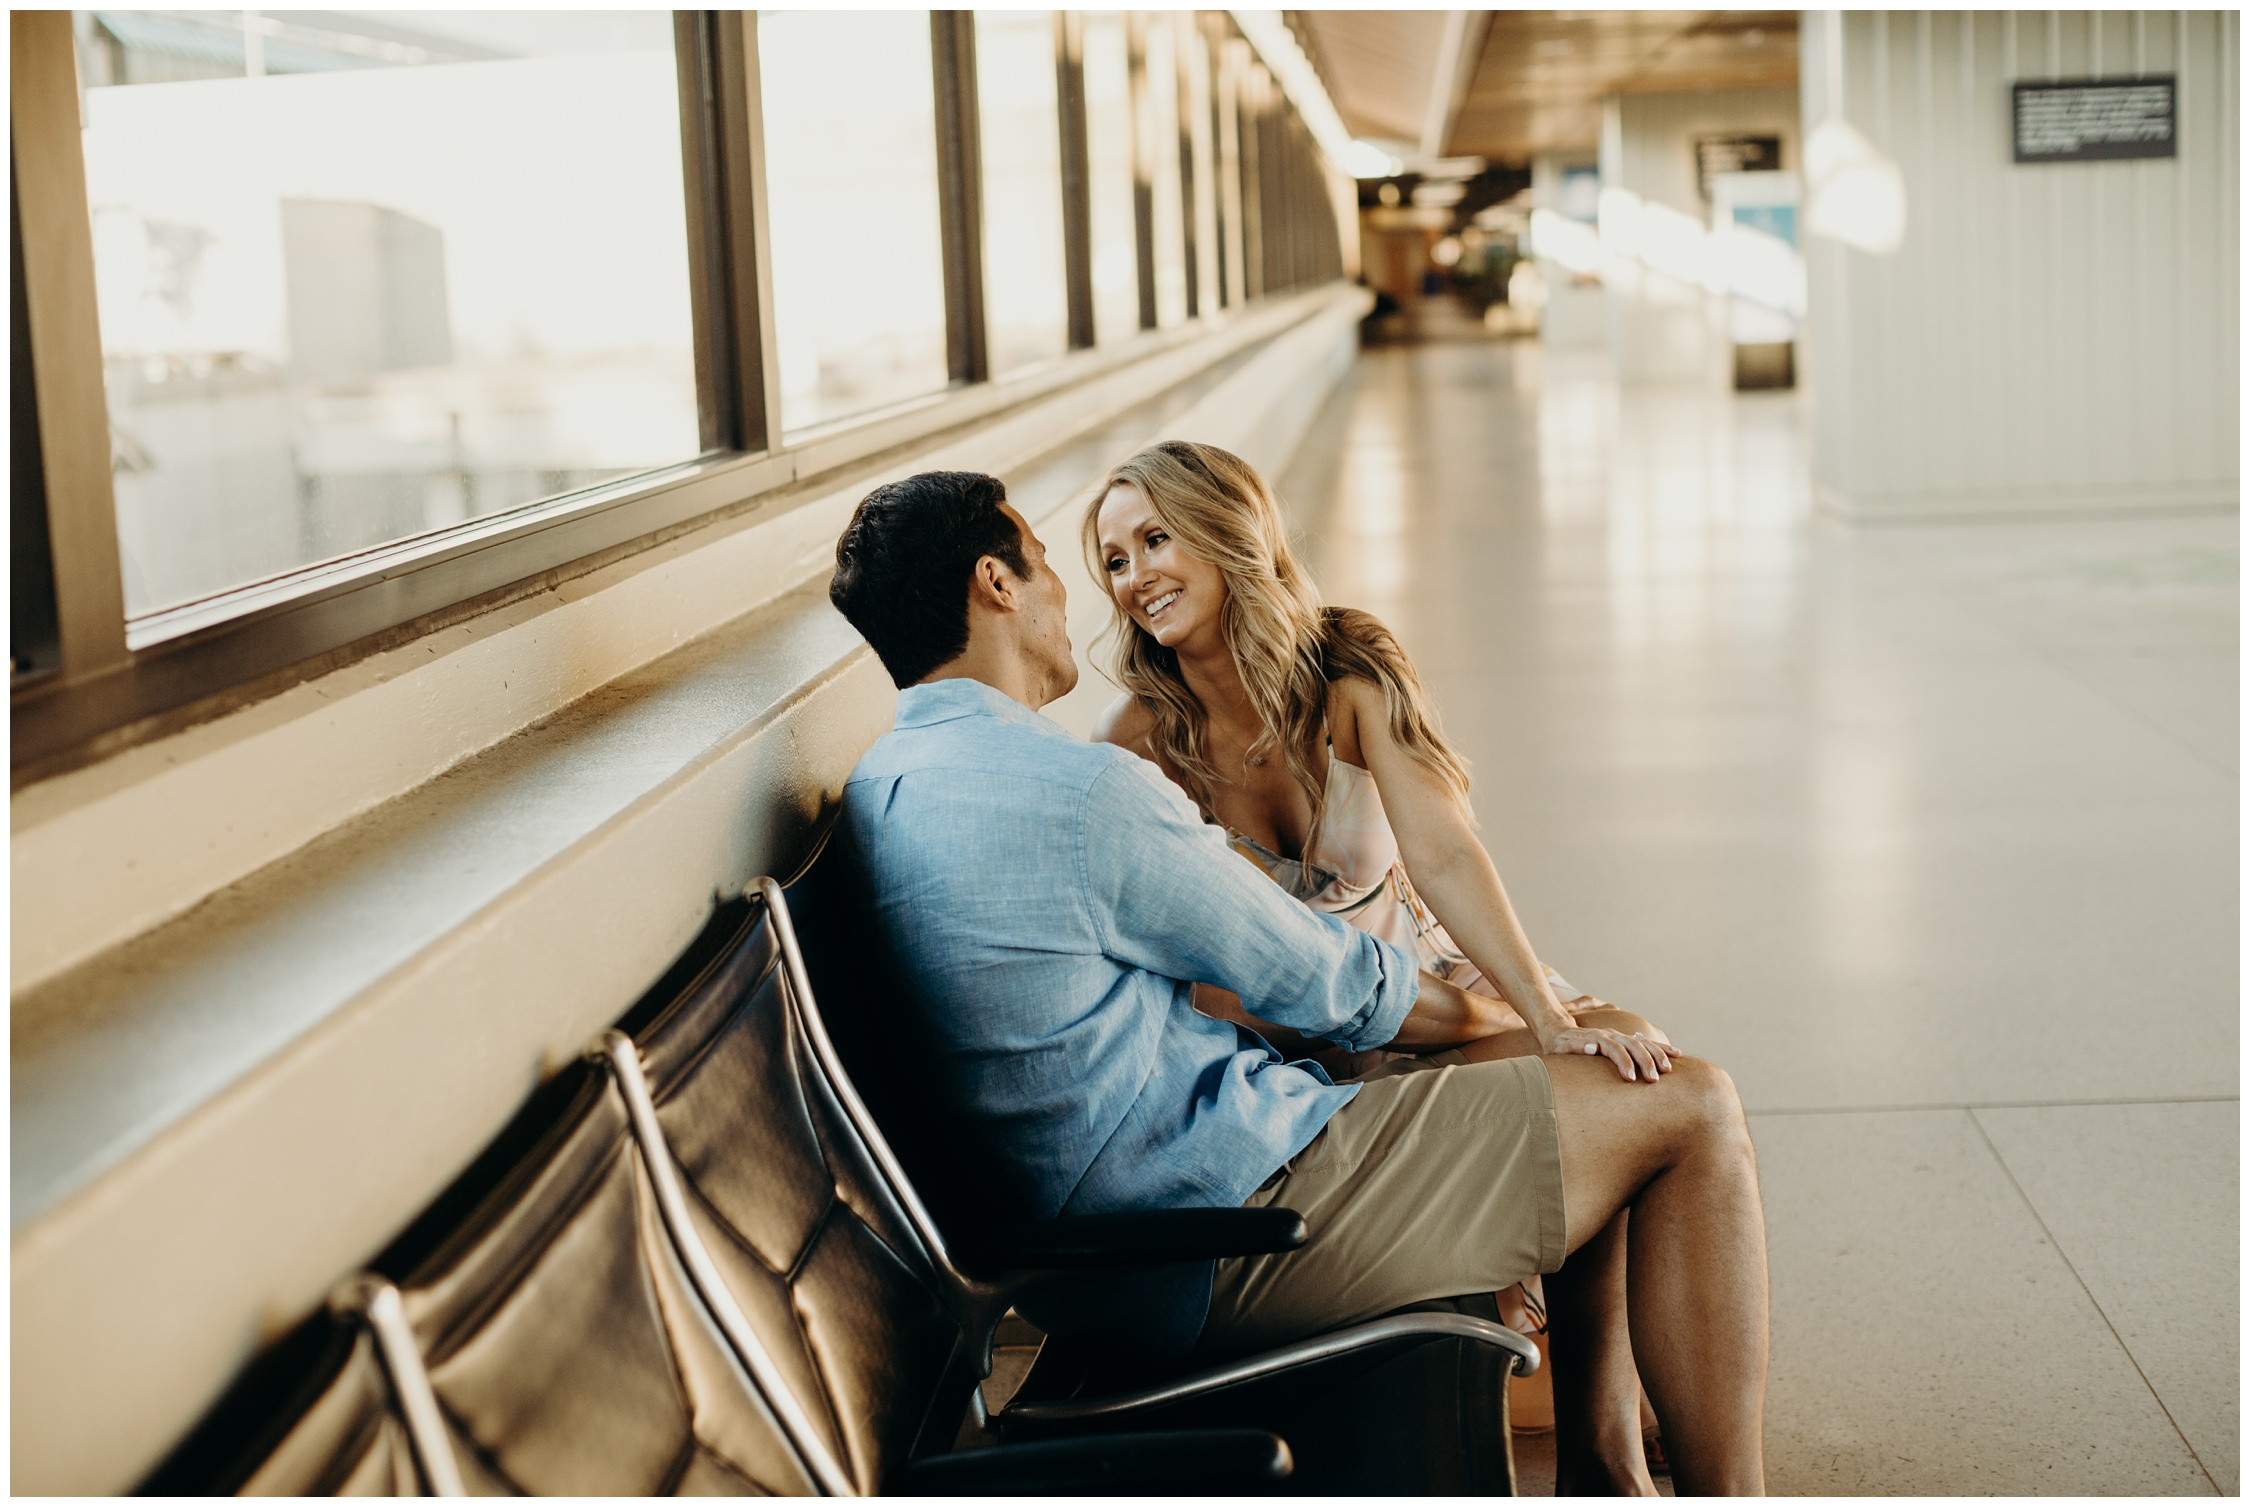 Hawaii-Engagement-Photographer-Keani-Bakula-Honolulu-International-Airport_0017.jpg